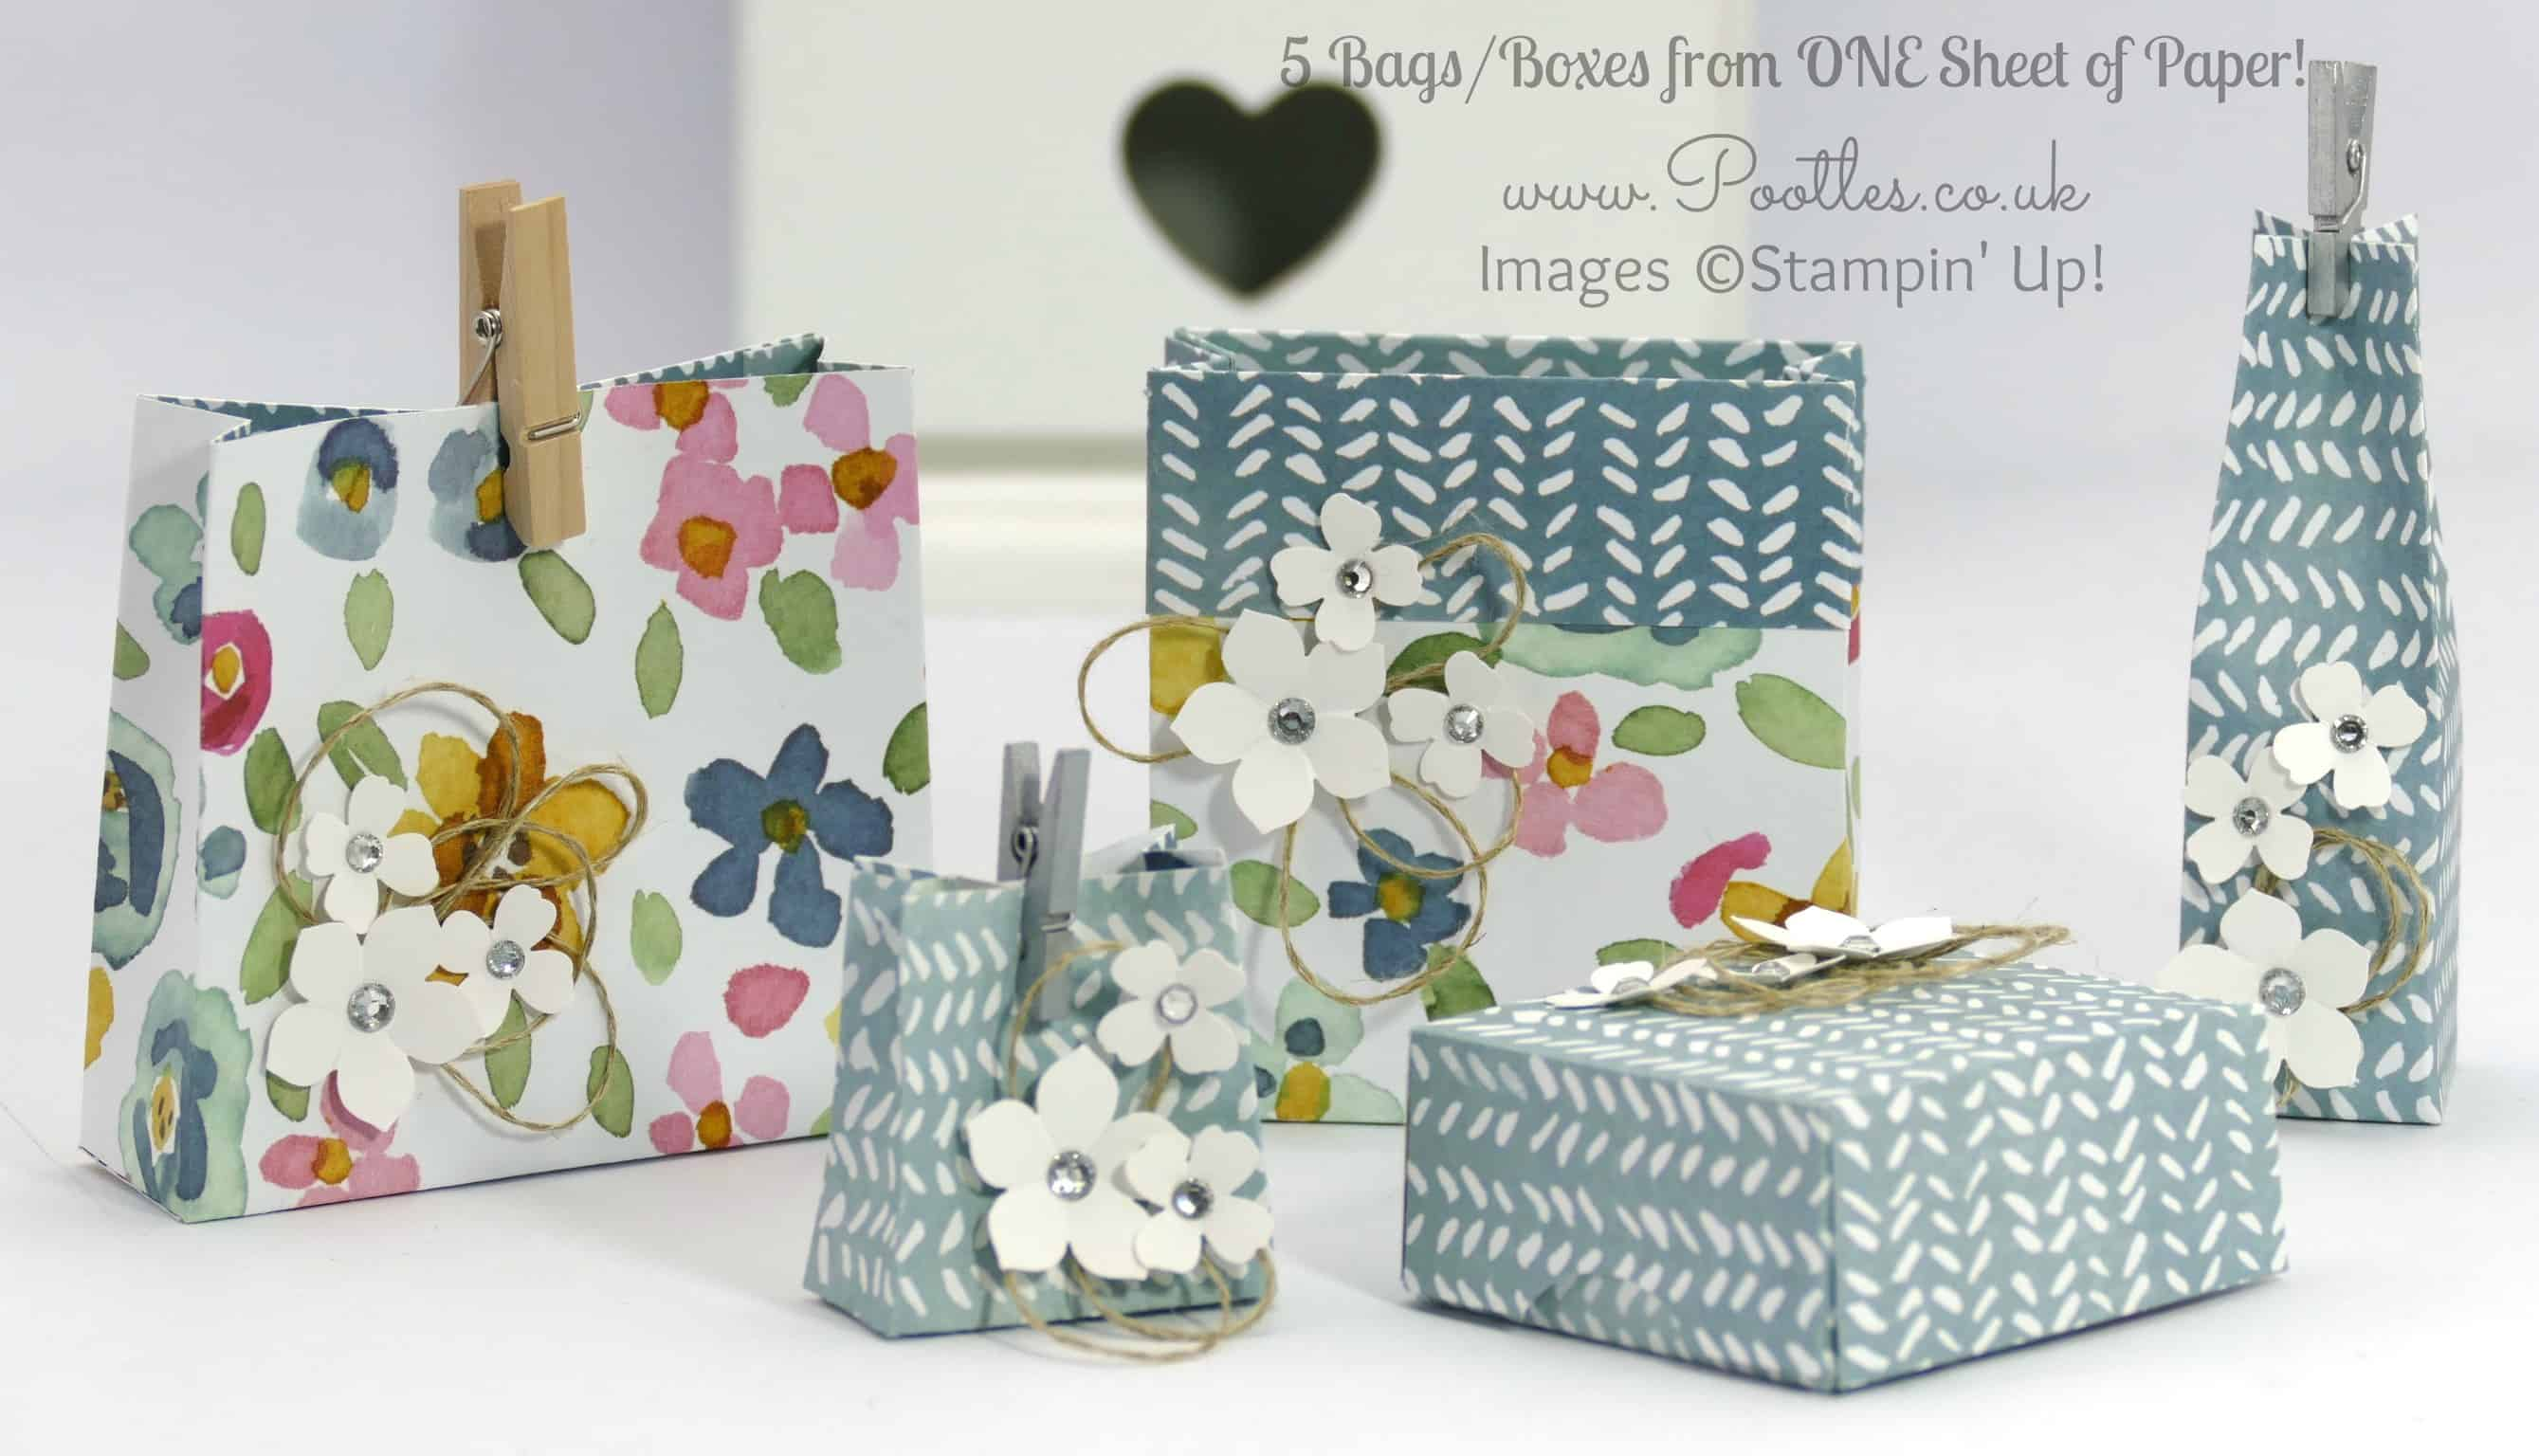 5 Bags Boxes from 1 Sheet of Stampin' Up! DSP + 12 Deals of Christmas